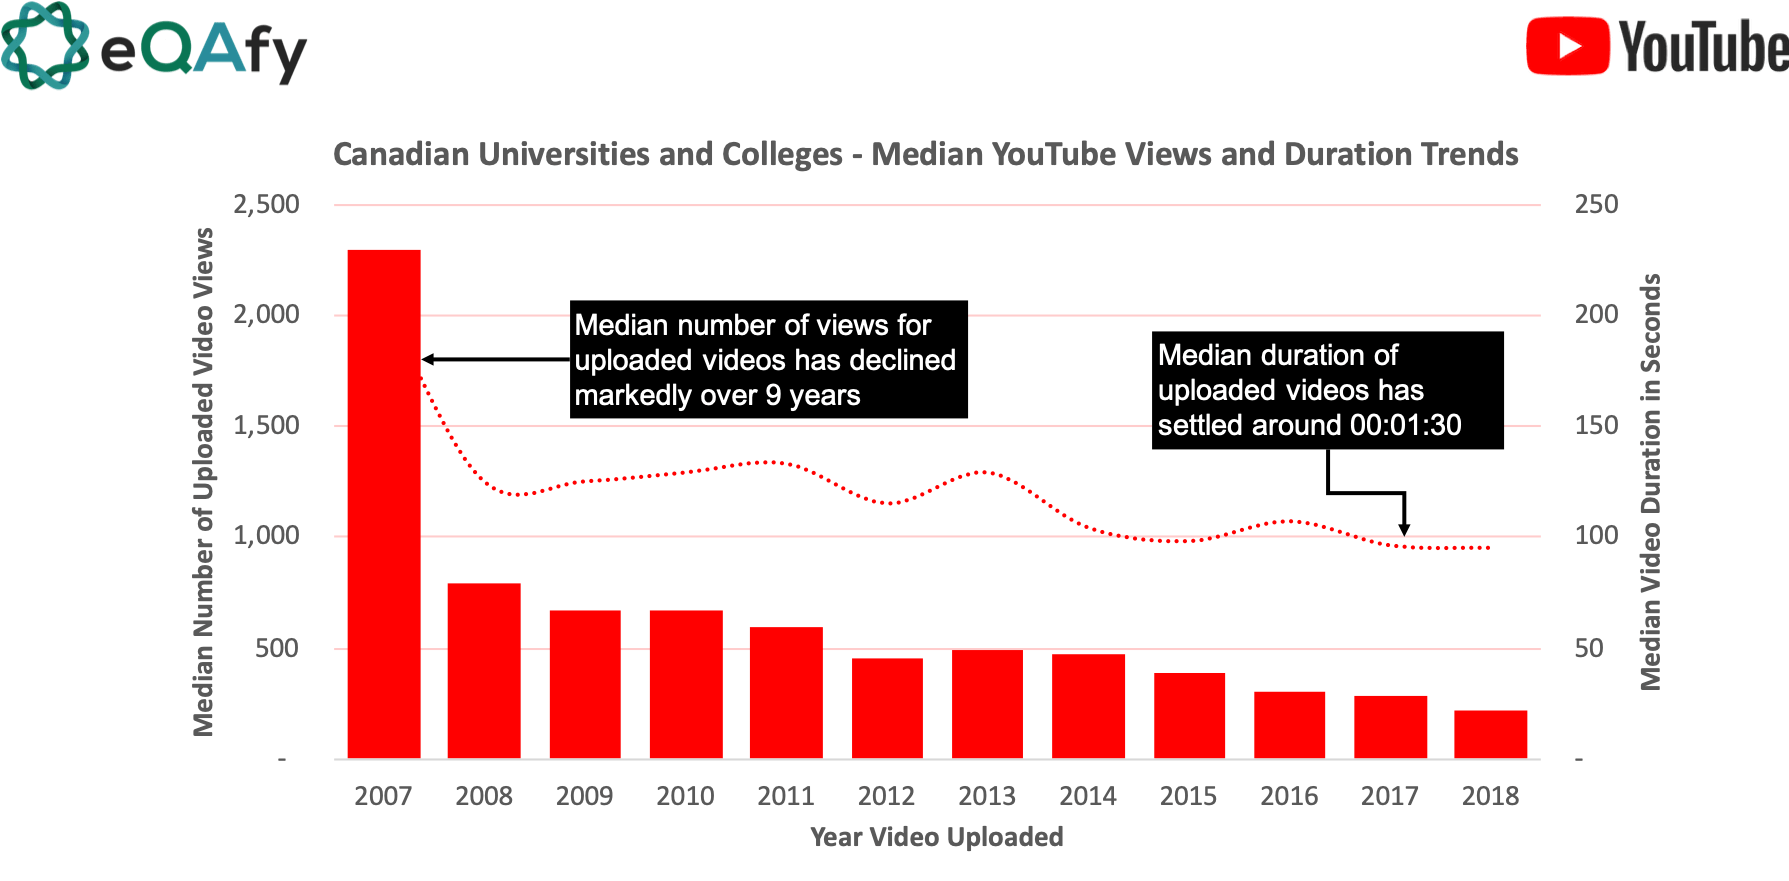 Median YouTube video engagement and duration for higher education/post-secondary institutions in Canada